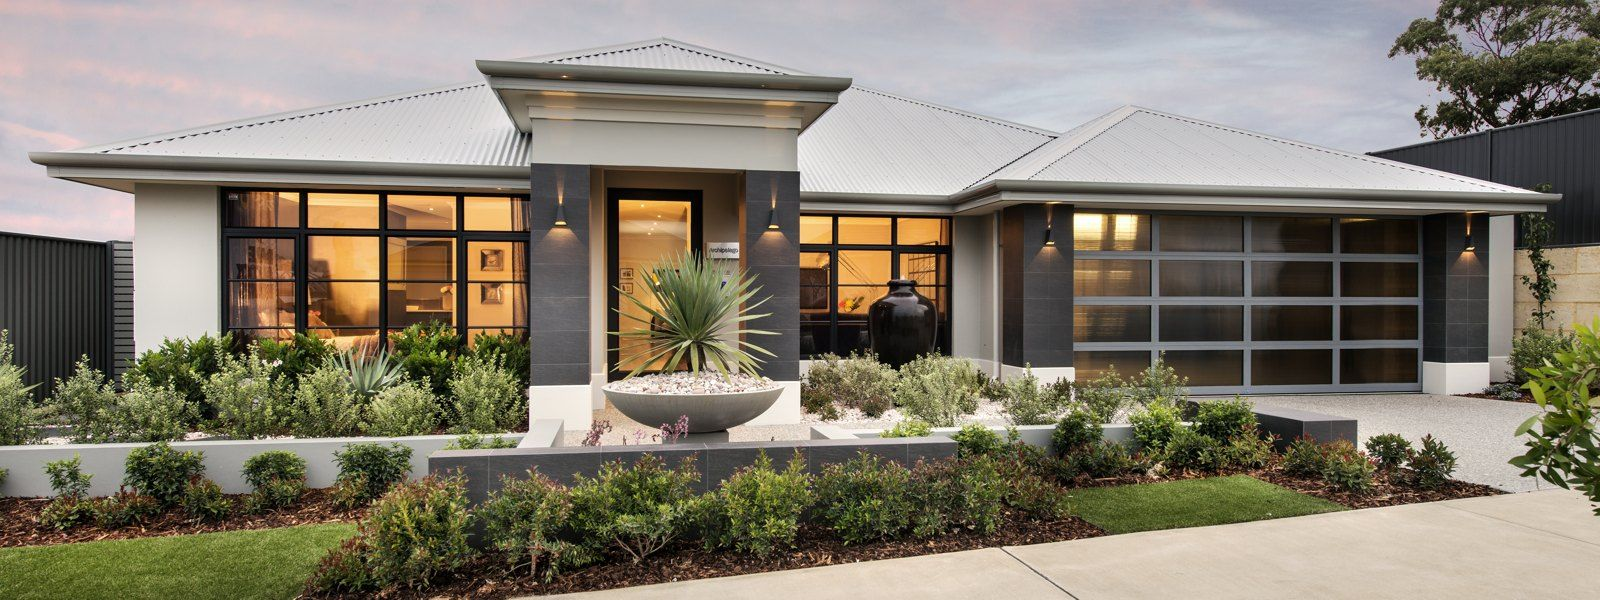 amazing australian front yard landscaping ideas pics inspiration